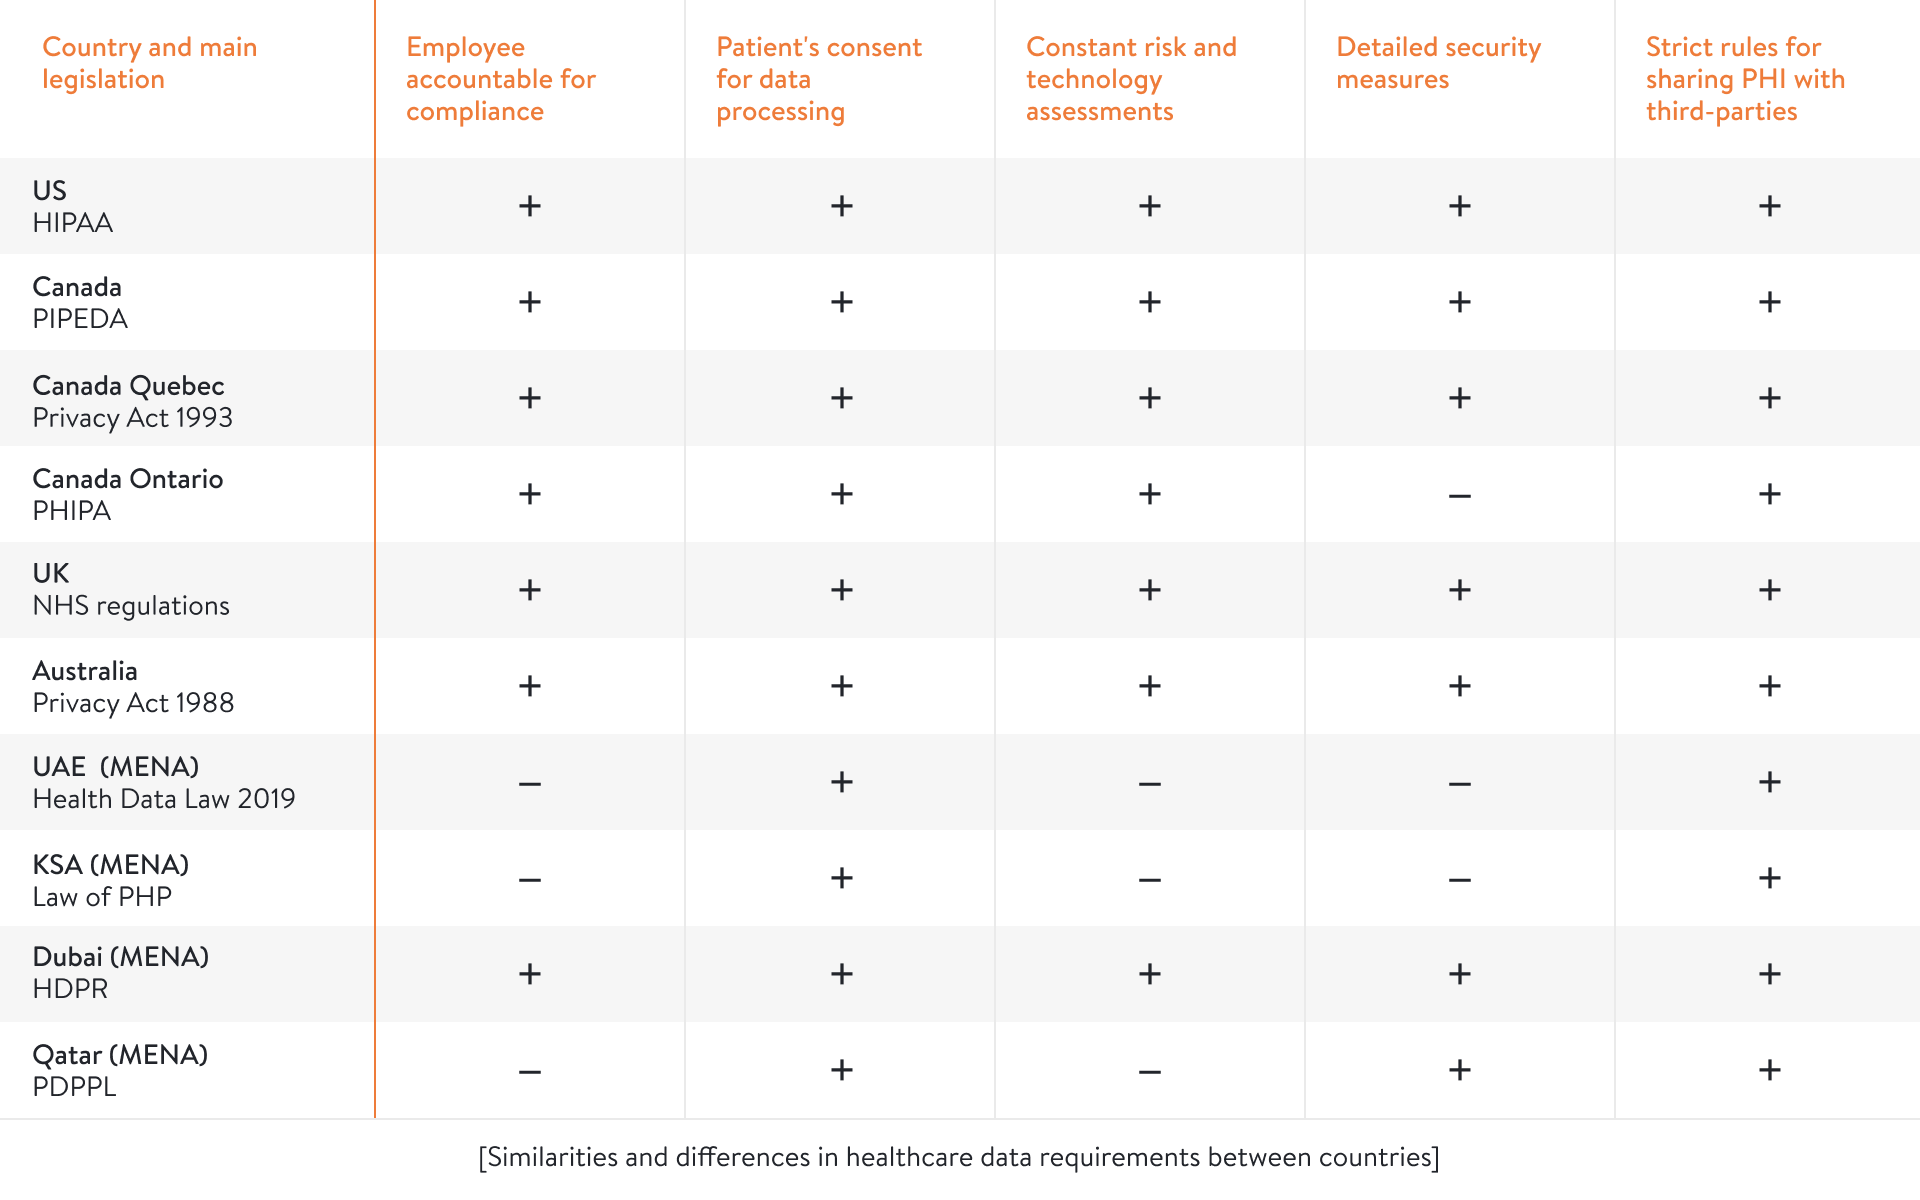 comparison of privacy rules between countries